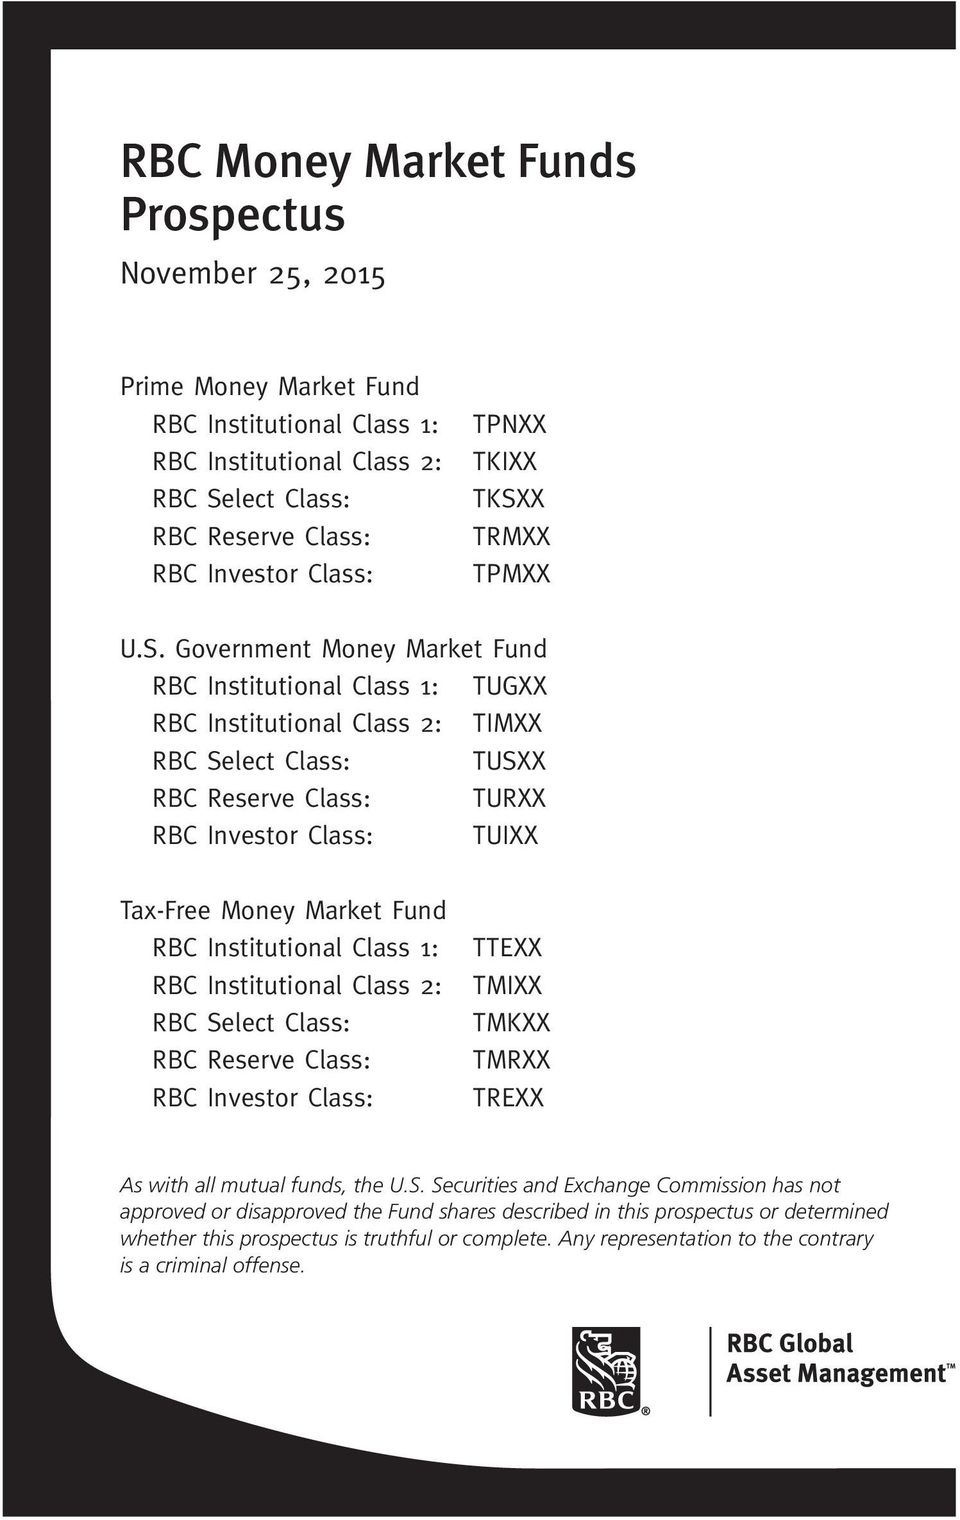 Tax-Free Money Market Fund RBC Institutional Class 1: RBC Institutional Class 2: RBC Select Class: RBC Reserve Class: RBC Investor Class: TTEXX TMIXX TMKXX TMRXX TREXX As with all mutual funds, the U.